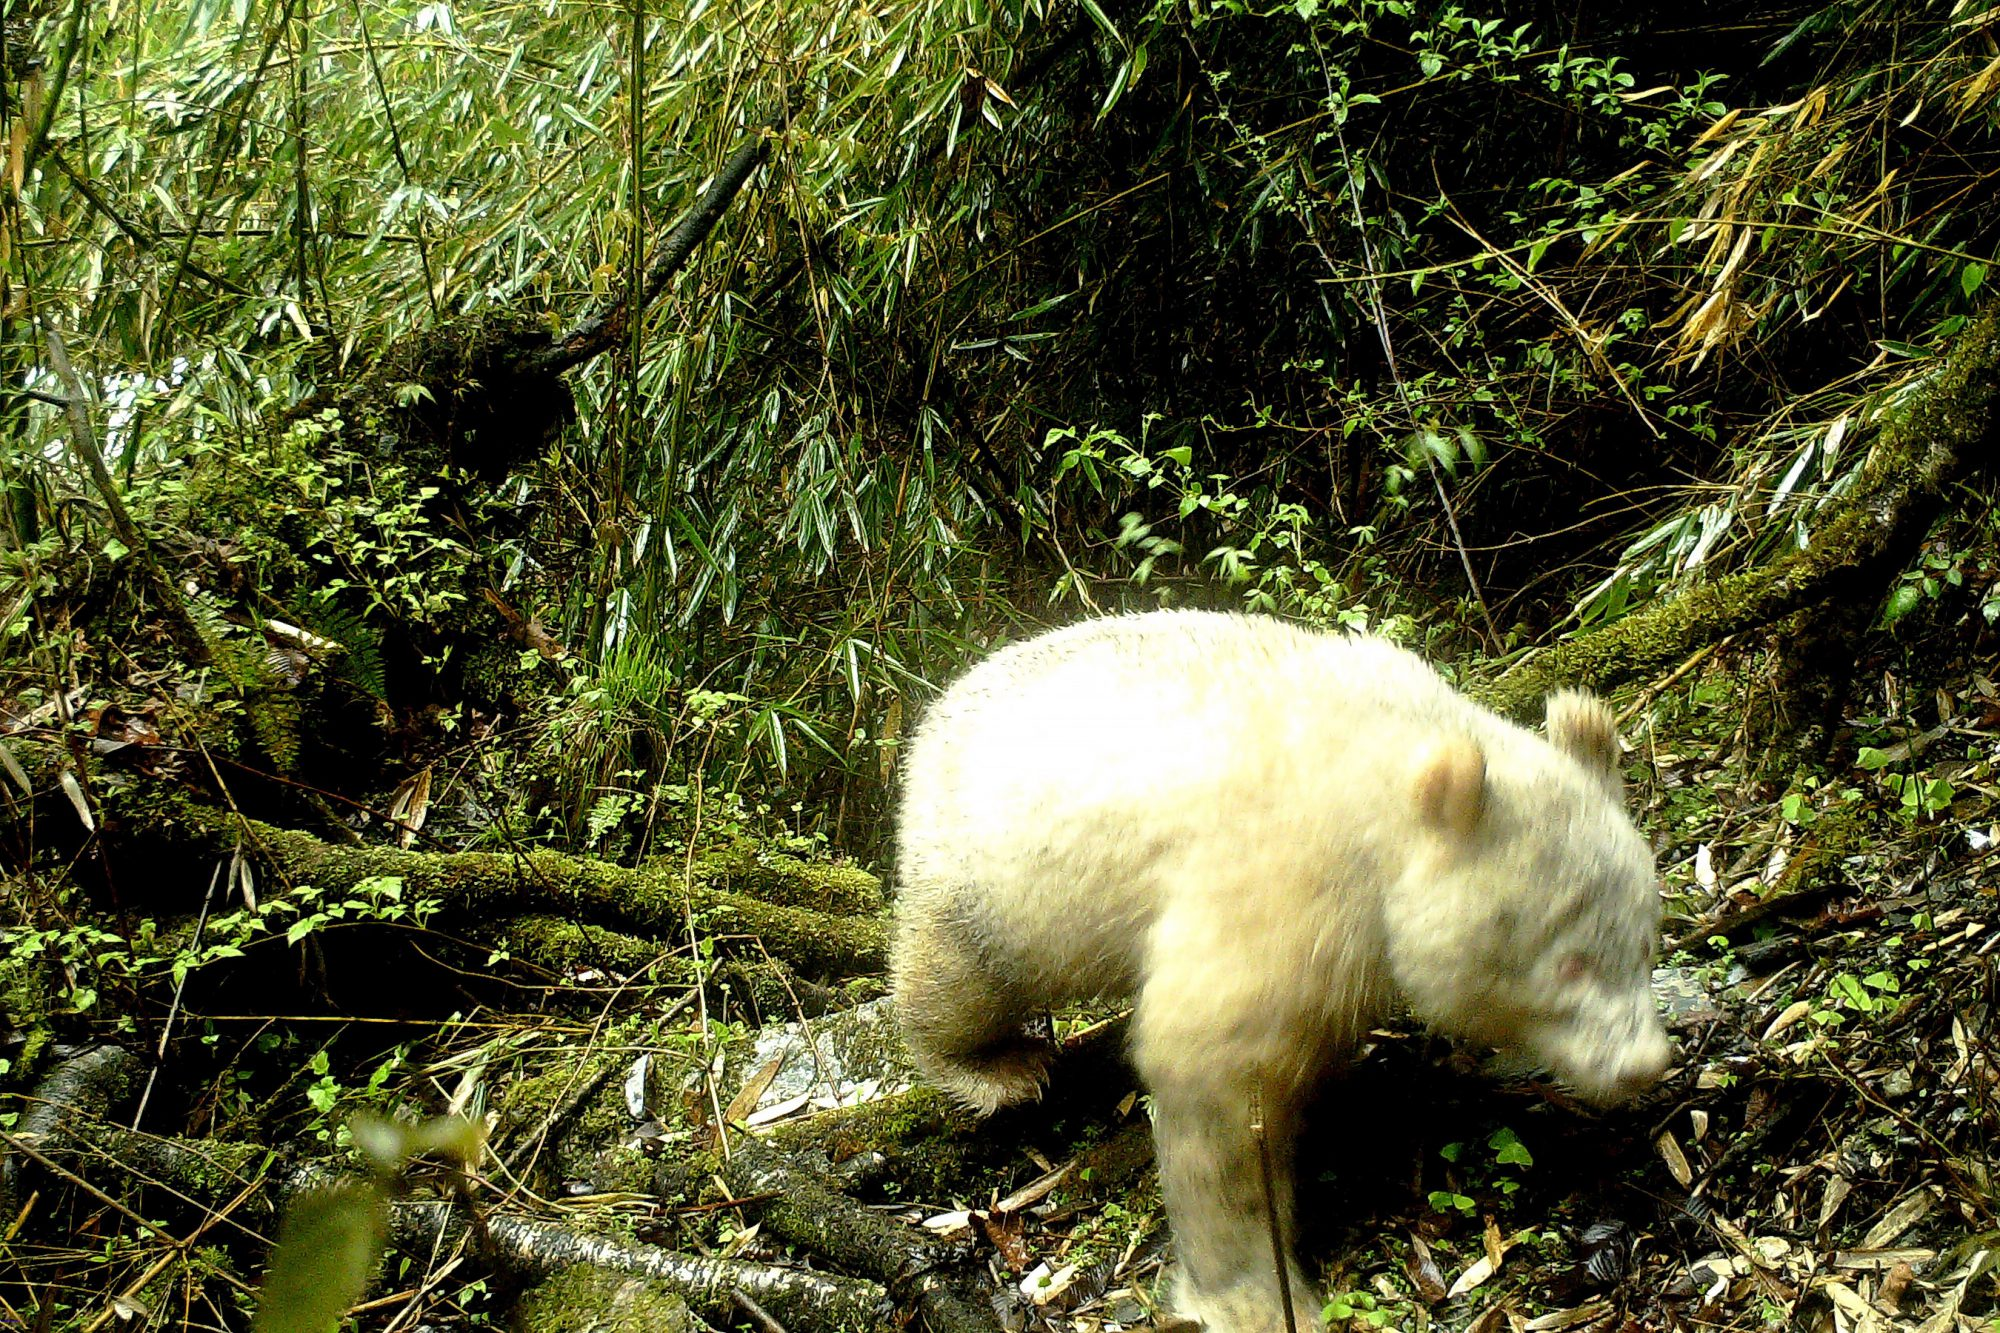 A handout photo made available by Wolong National Nature Reserve shows an infrared camera image showing an all-white giant panda, as seen in the Wolong National Nature Reserve, in Sichuan province, China, 20 April 2019